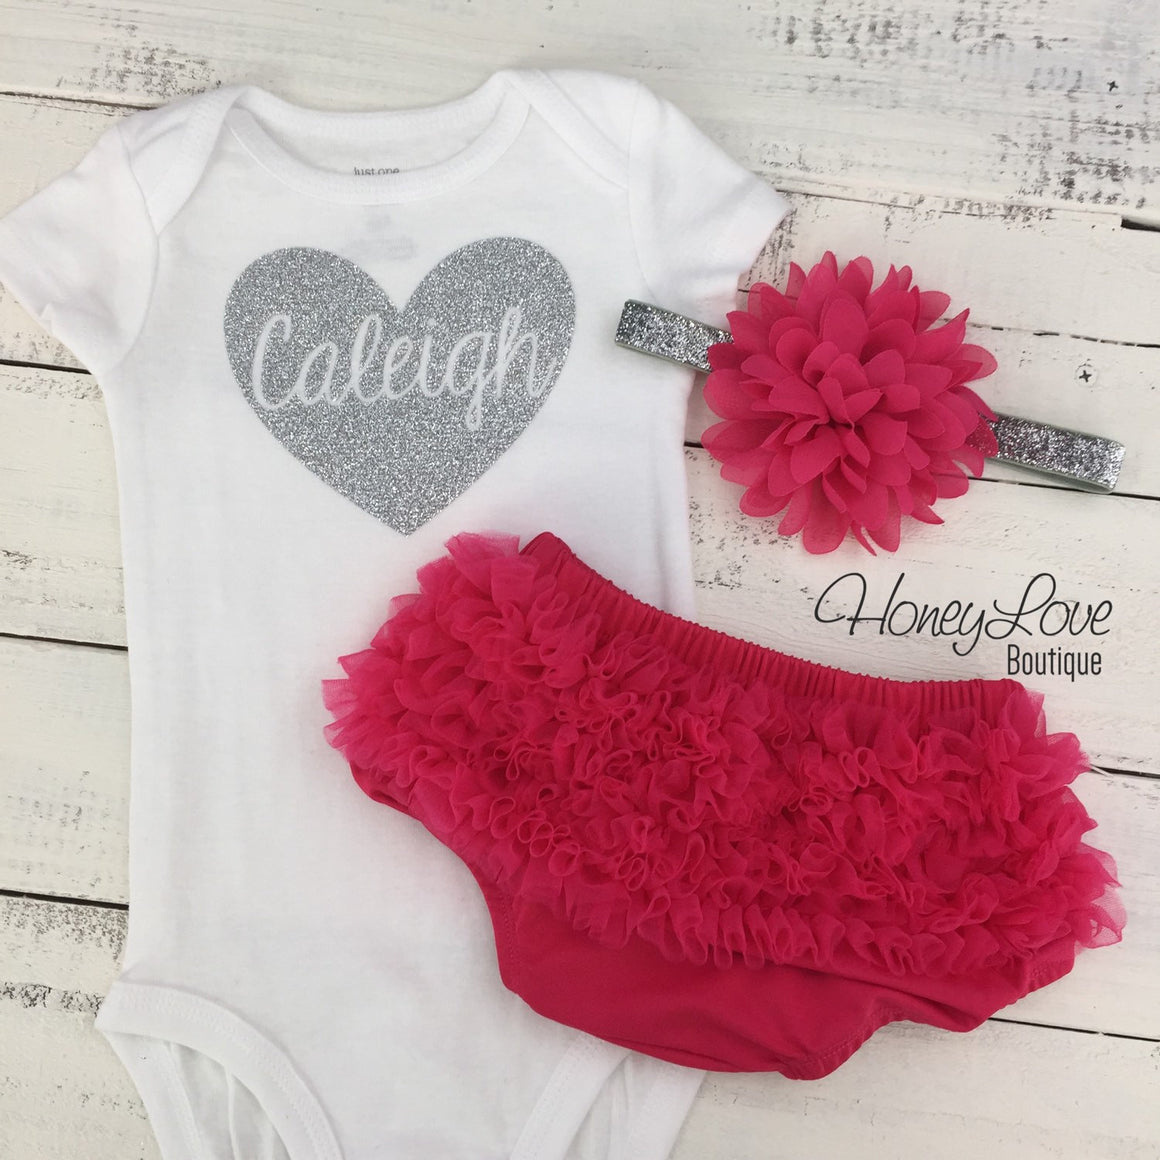 PERSONALIZED Name inside Heart - Watermelon Pink and Silver/Gold Glitter - ruffle bottom bloomer - HoneyLoveBoutique